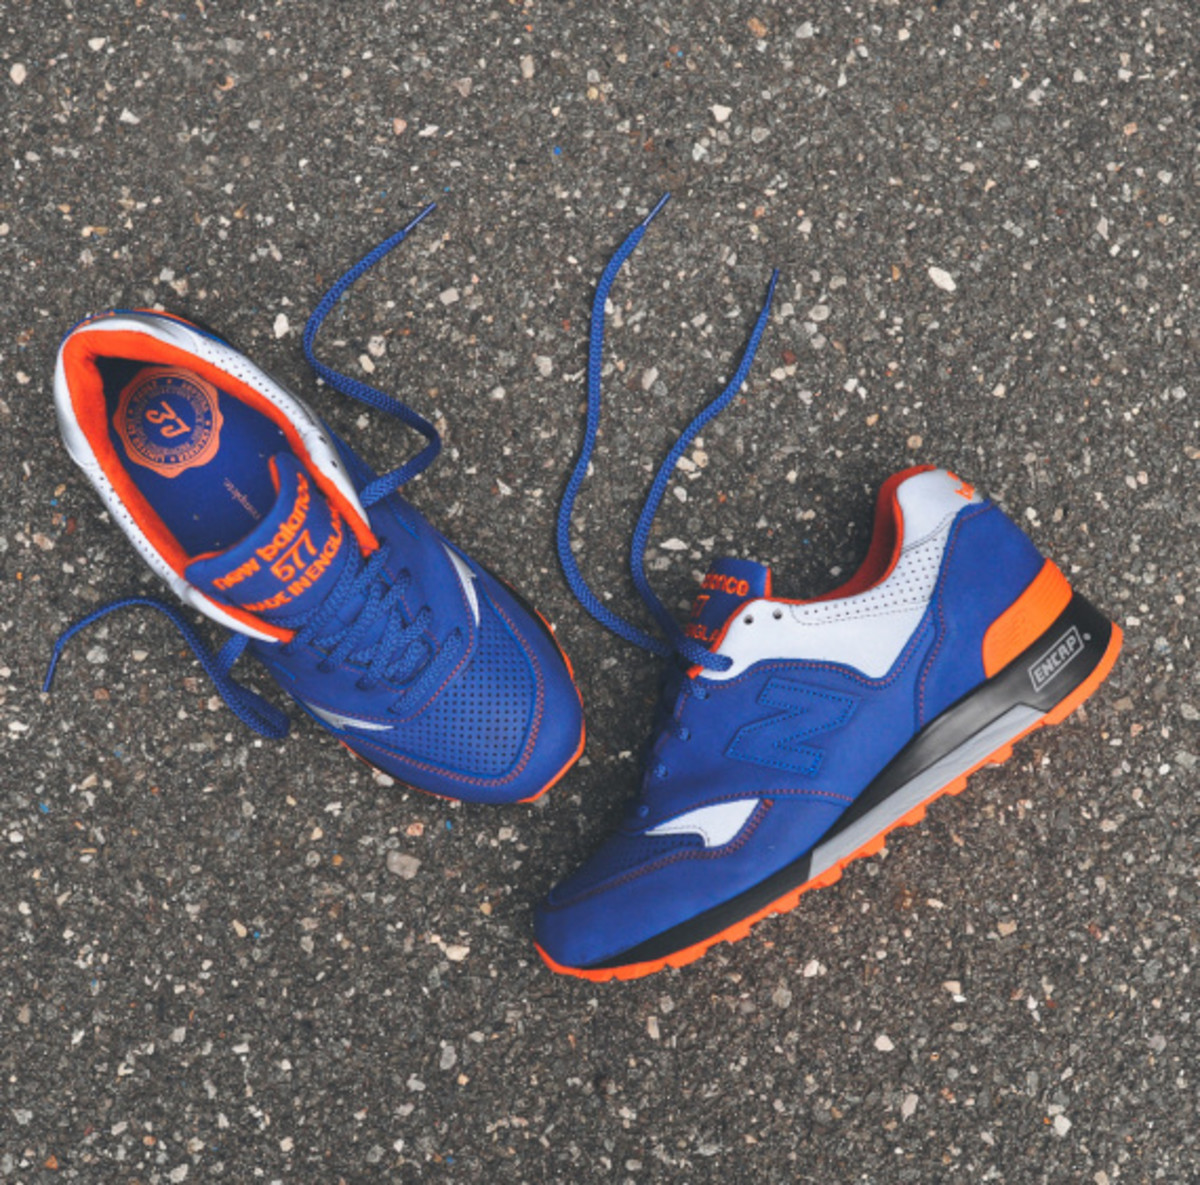 Limited Edt. x New Balance M577 | Available Now - 4